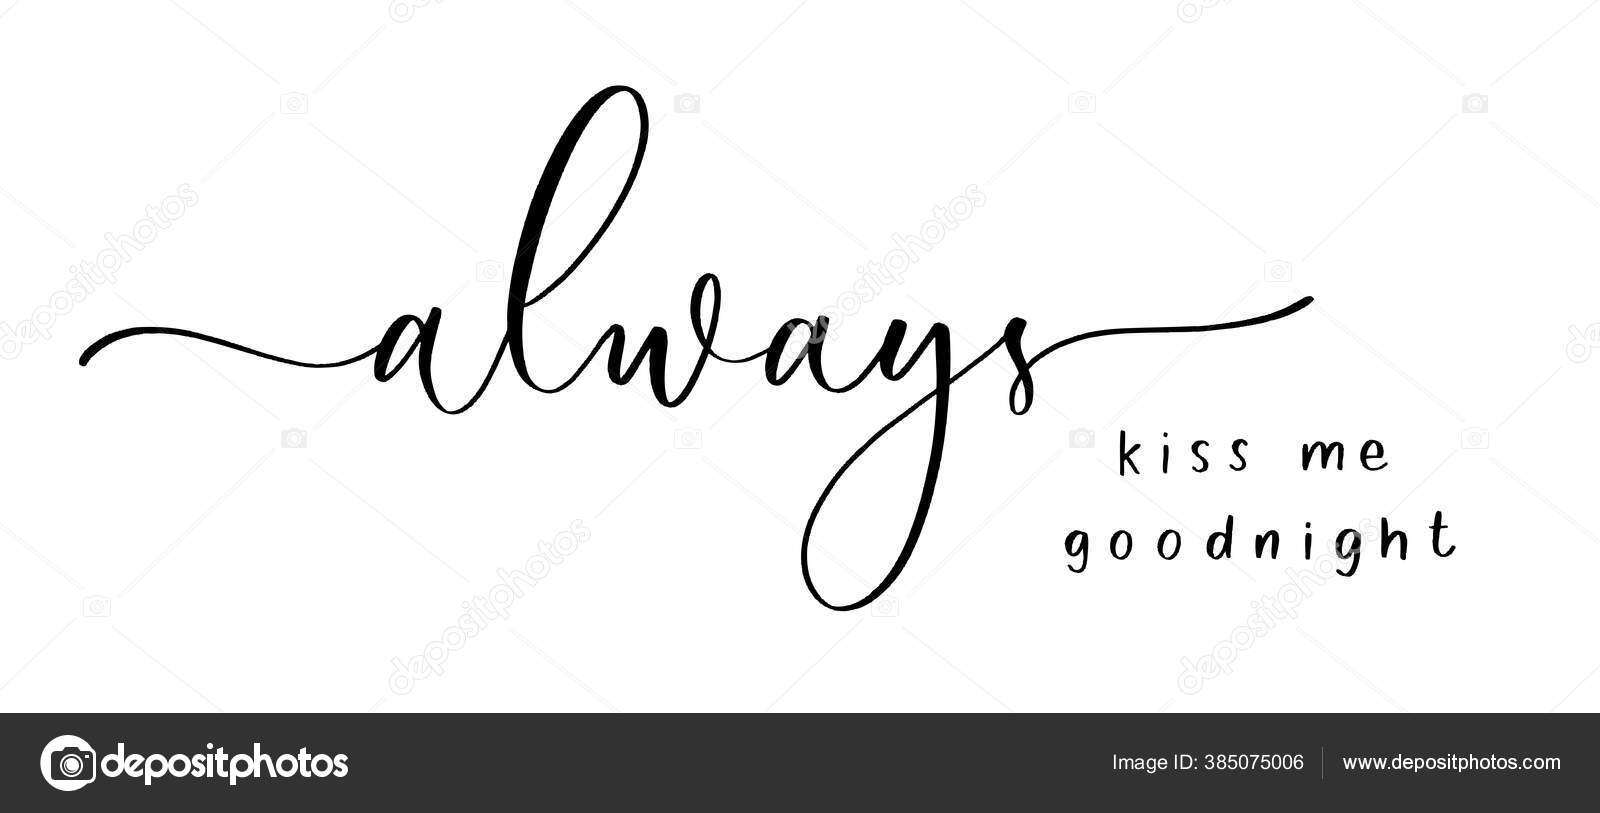 Áˆ Kiss Me Goodnight Stock Images Royalty Free Always Kiss Me Goodnight Pics Download On Depositphotos